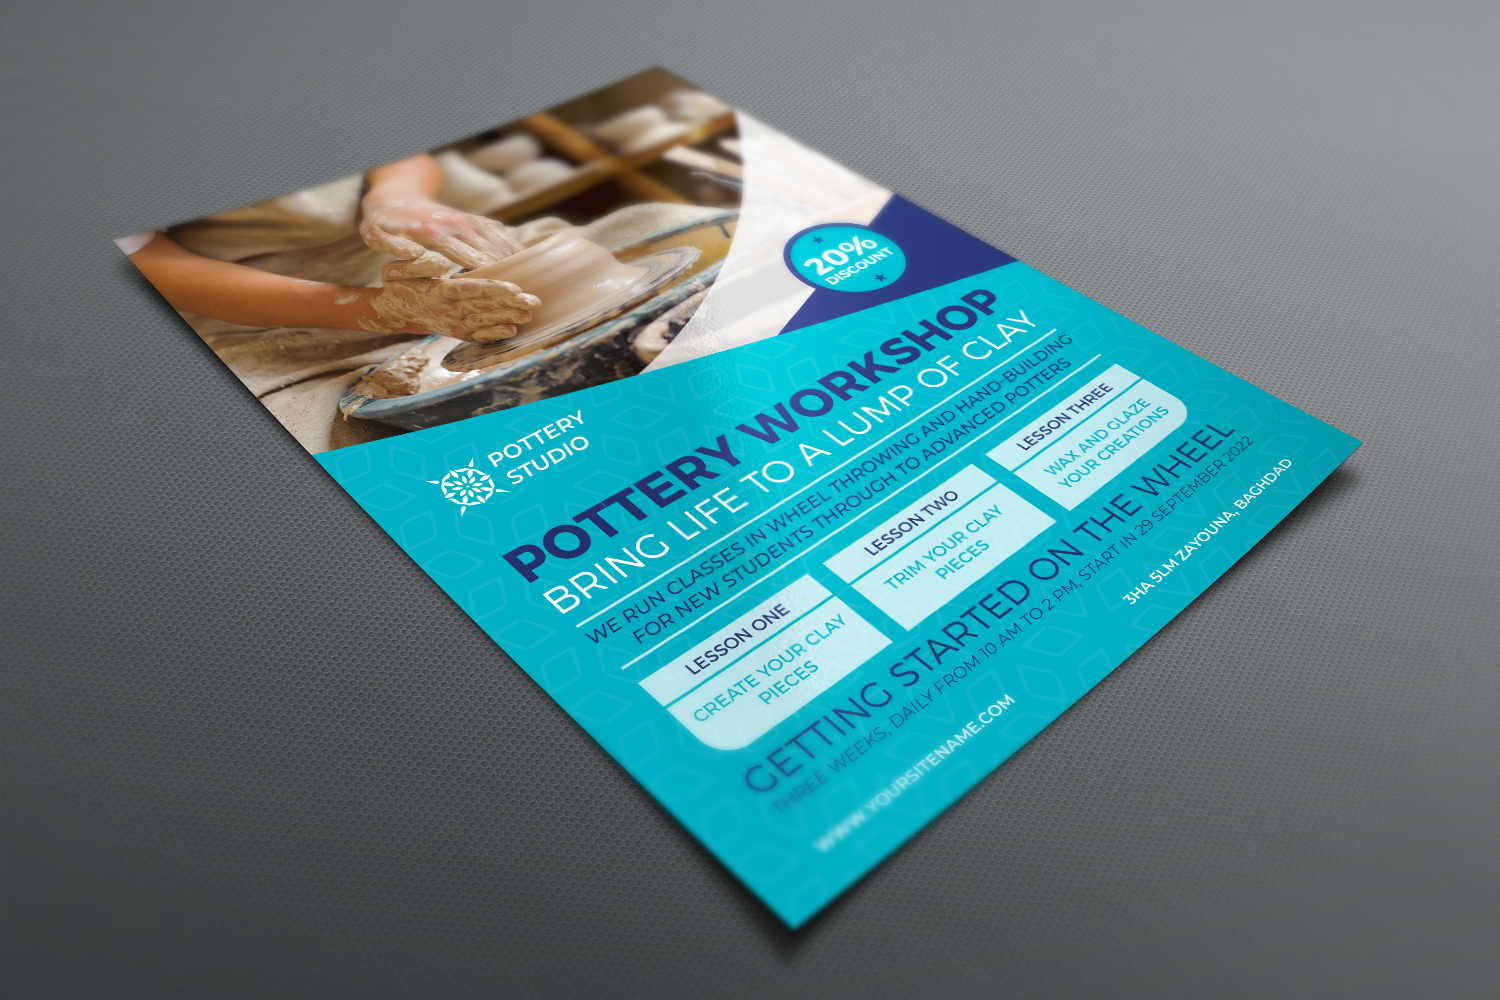 Pottery Workshop Flyer Template example image 3